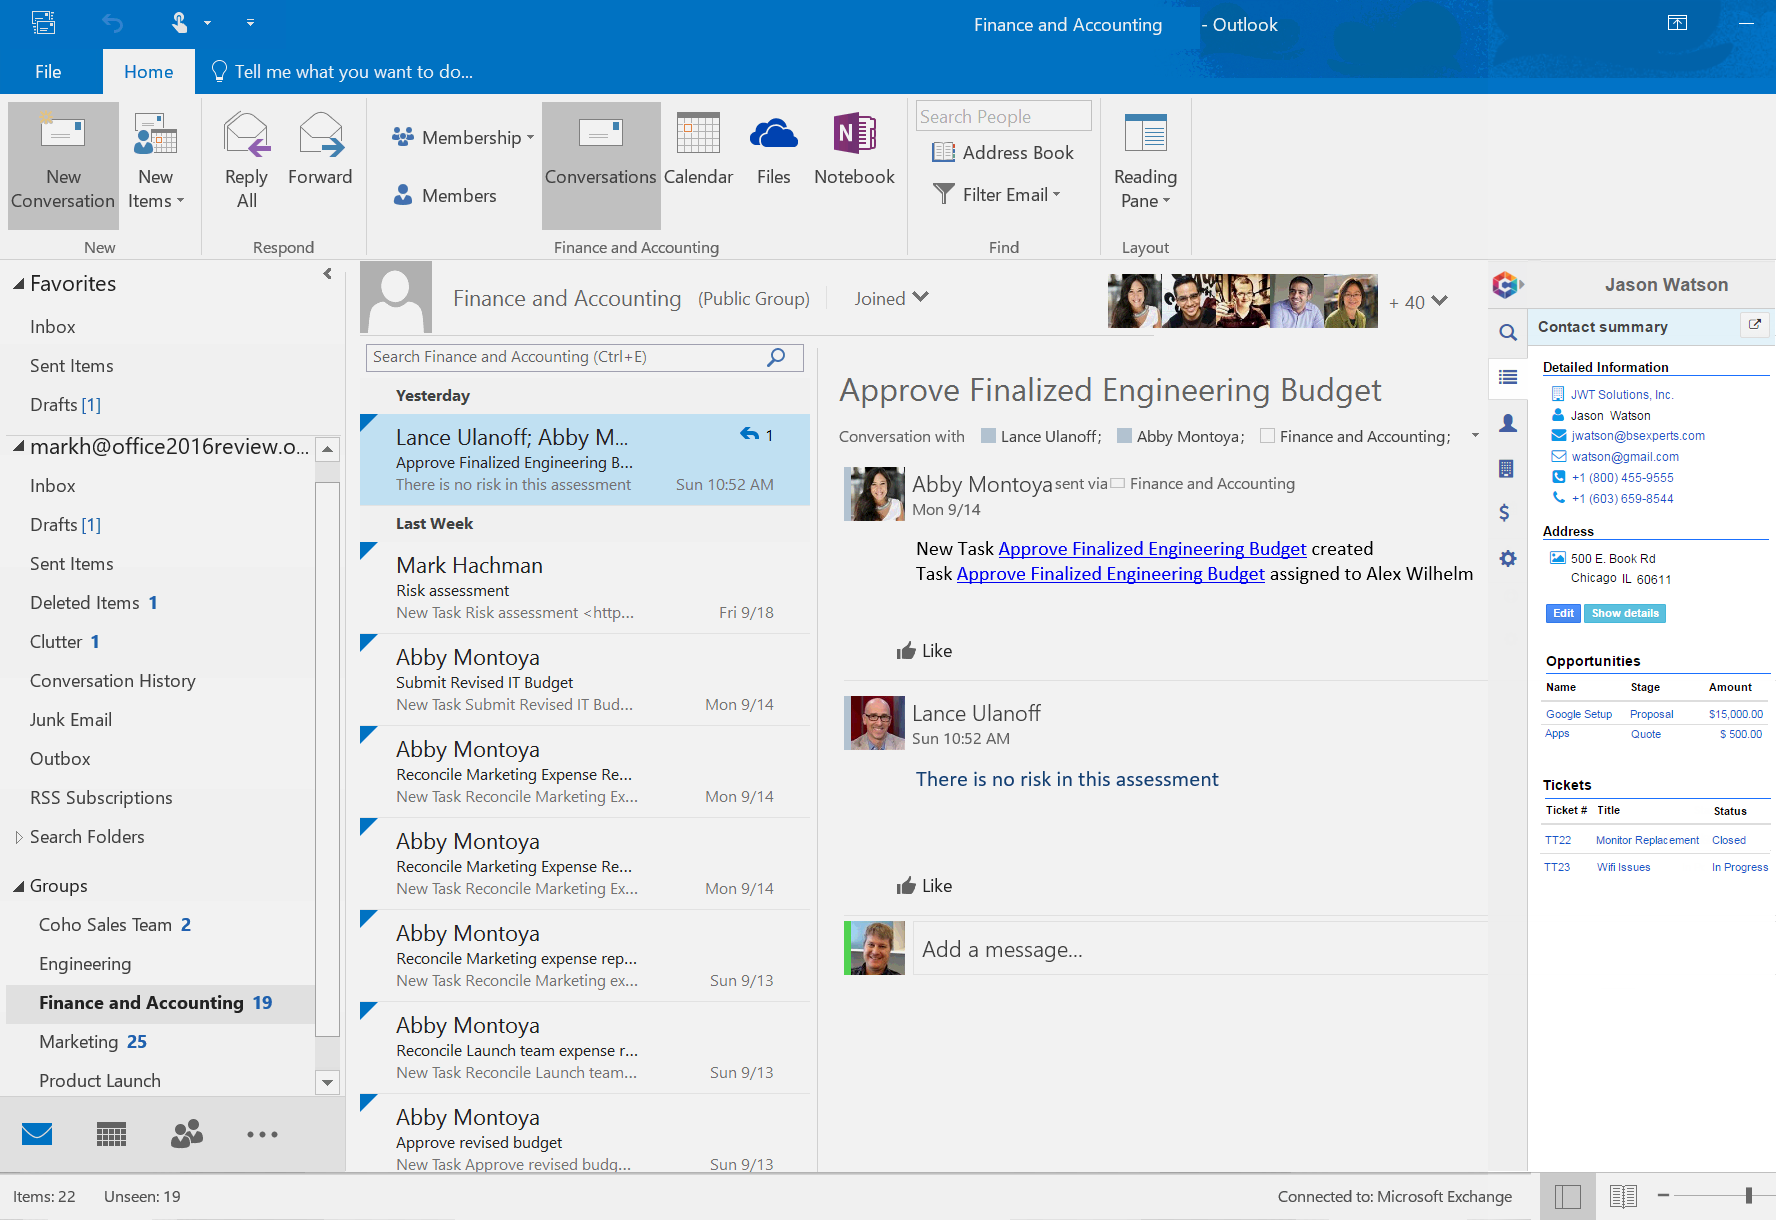 Summary View (Outlook)